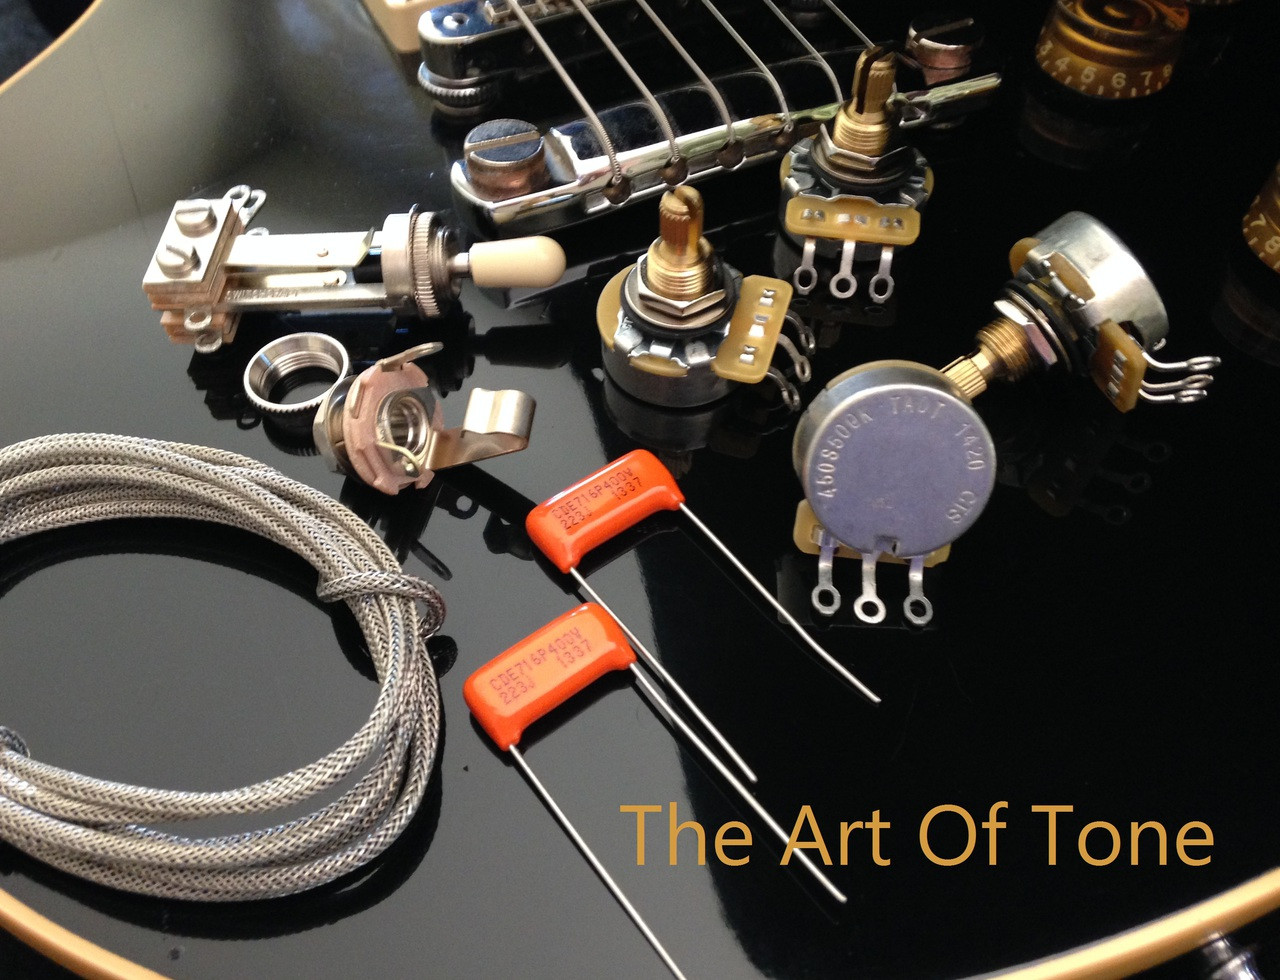 Les Paul Wiring Kit Diagram Third Level Jazzmaster Harness Deluxe Short Shaft For Gibson Usa Guitars Treble Bleed Mod